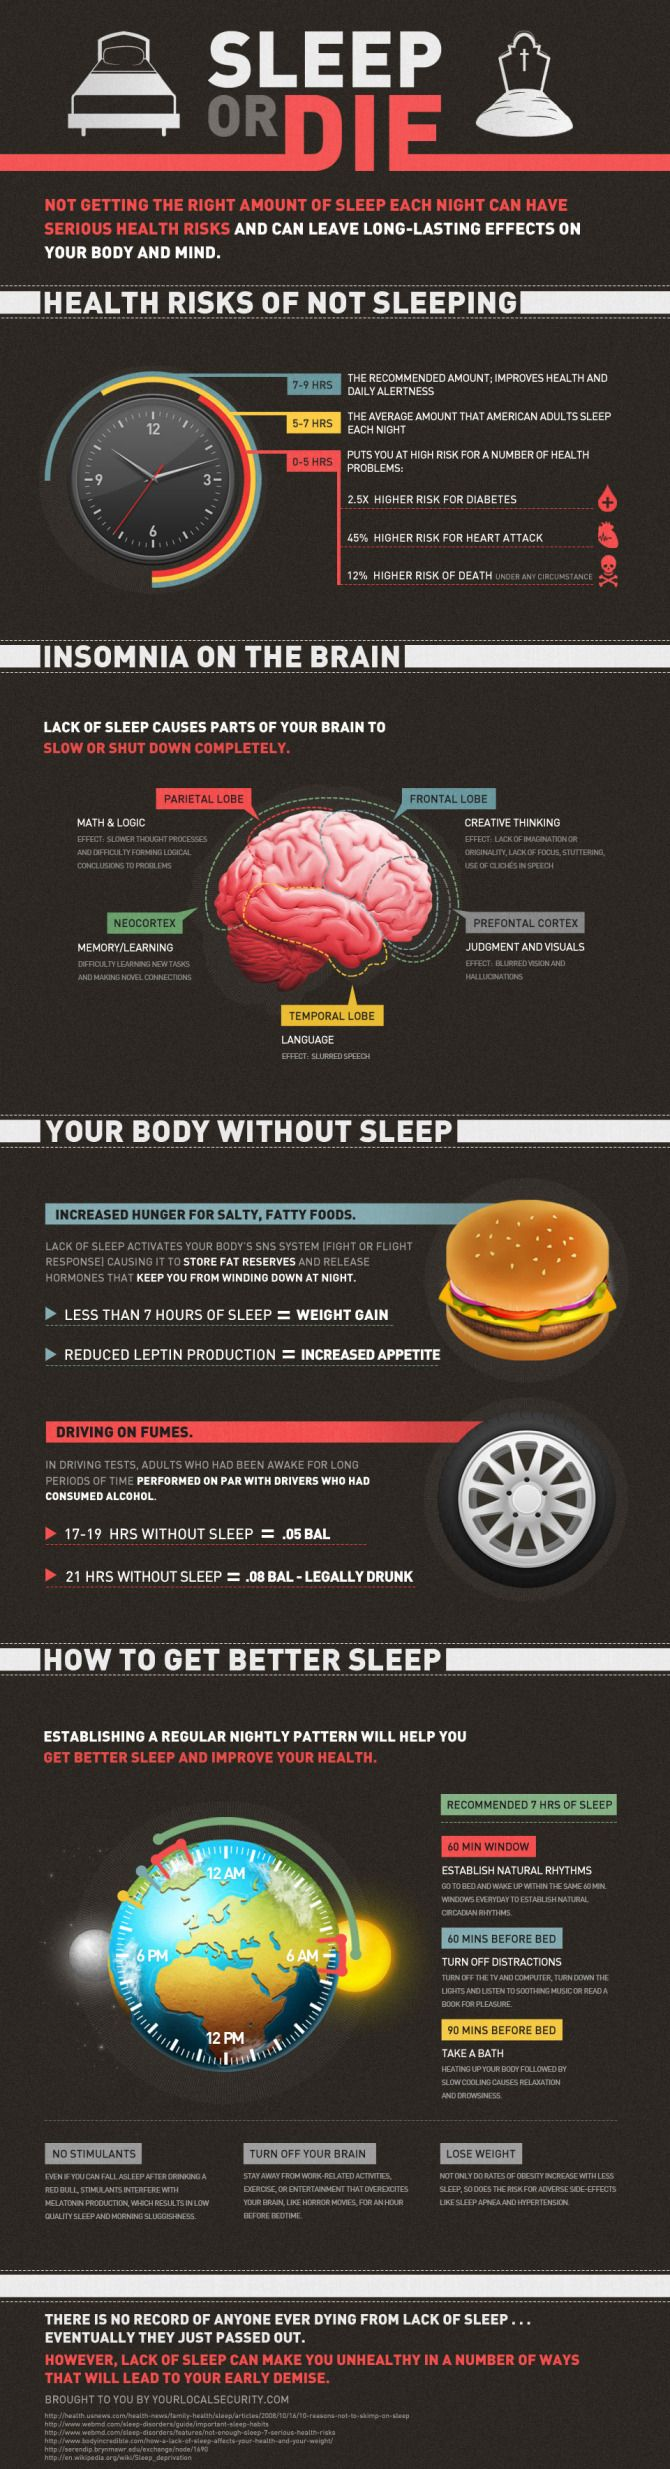 6 Tips For Getting Out of Sleep Debt - Articles - LifeTime WeightLoss